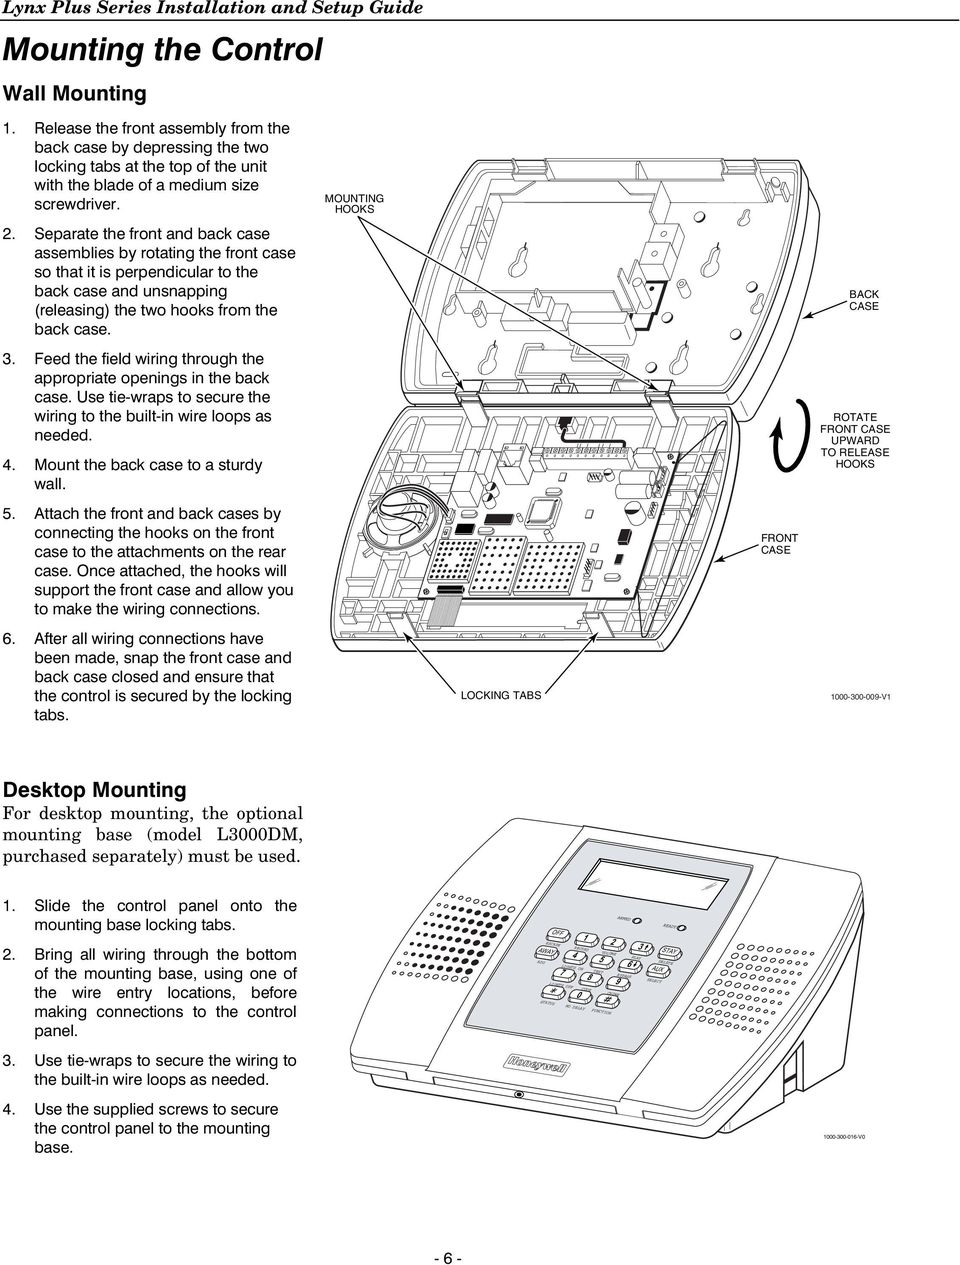 diagram of wiring to mount cable on wall with 10948772 Lynx Plus Series Security Systems on 12 Volt Winch Schematics furthermore Cable Wire Covers Wall furthermore Ge Healthcare Reviews moreover Connecting To The Inter  Using Your Router additionally Rj45 Wall Jack Wiring Diagram.